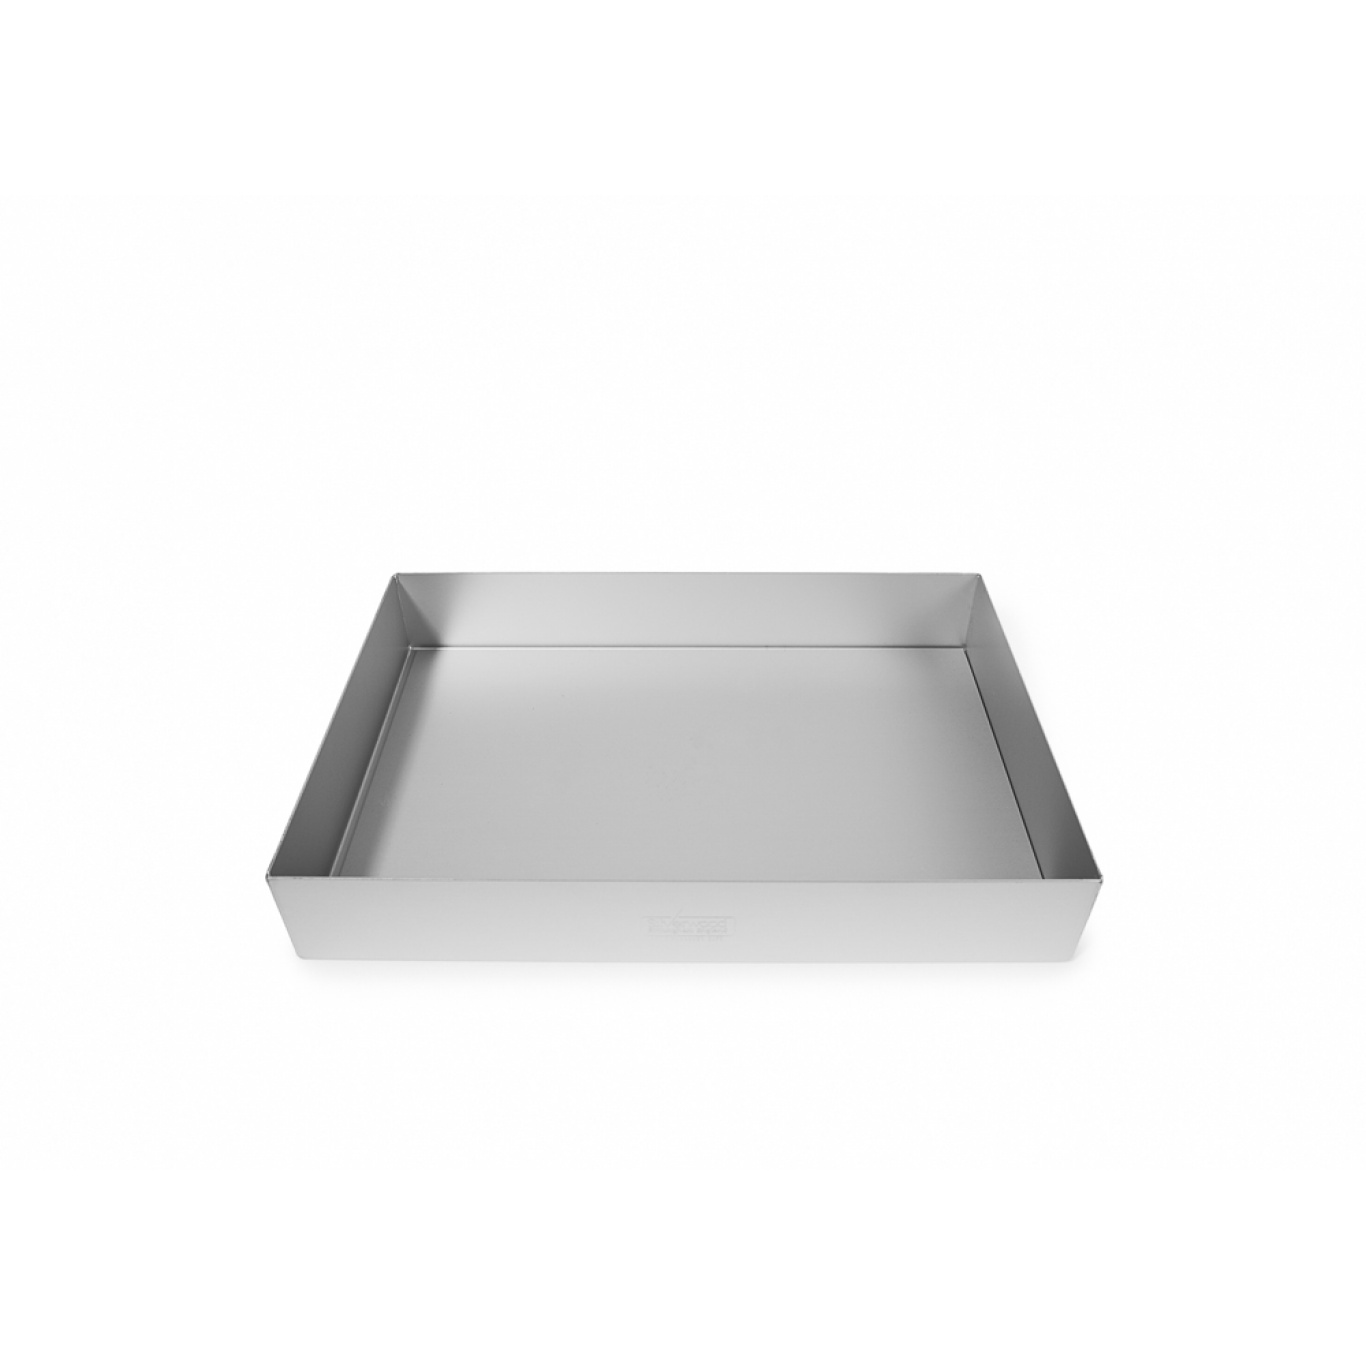 Image of Silverwood Traybake Pan Loose Base 12 x 8ins